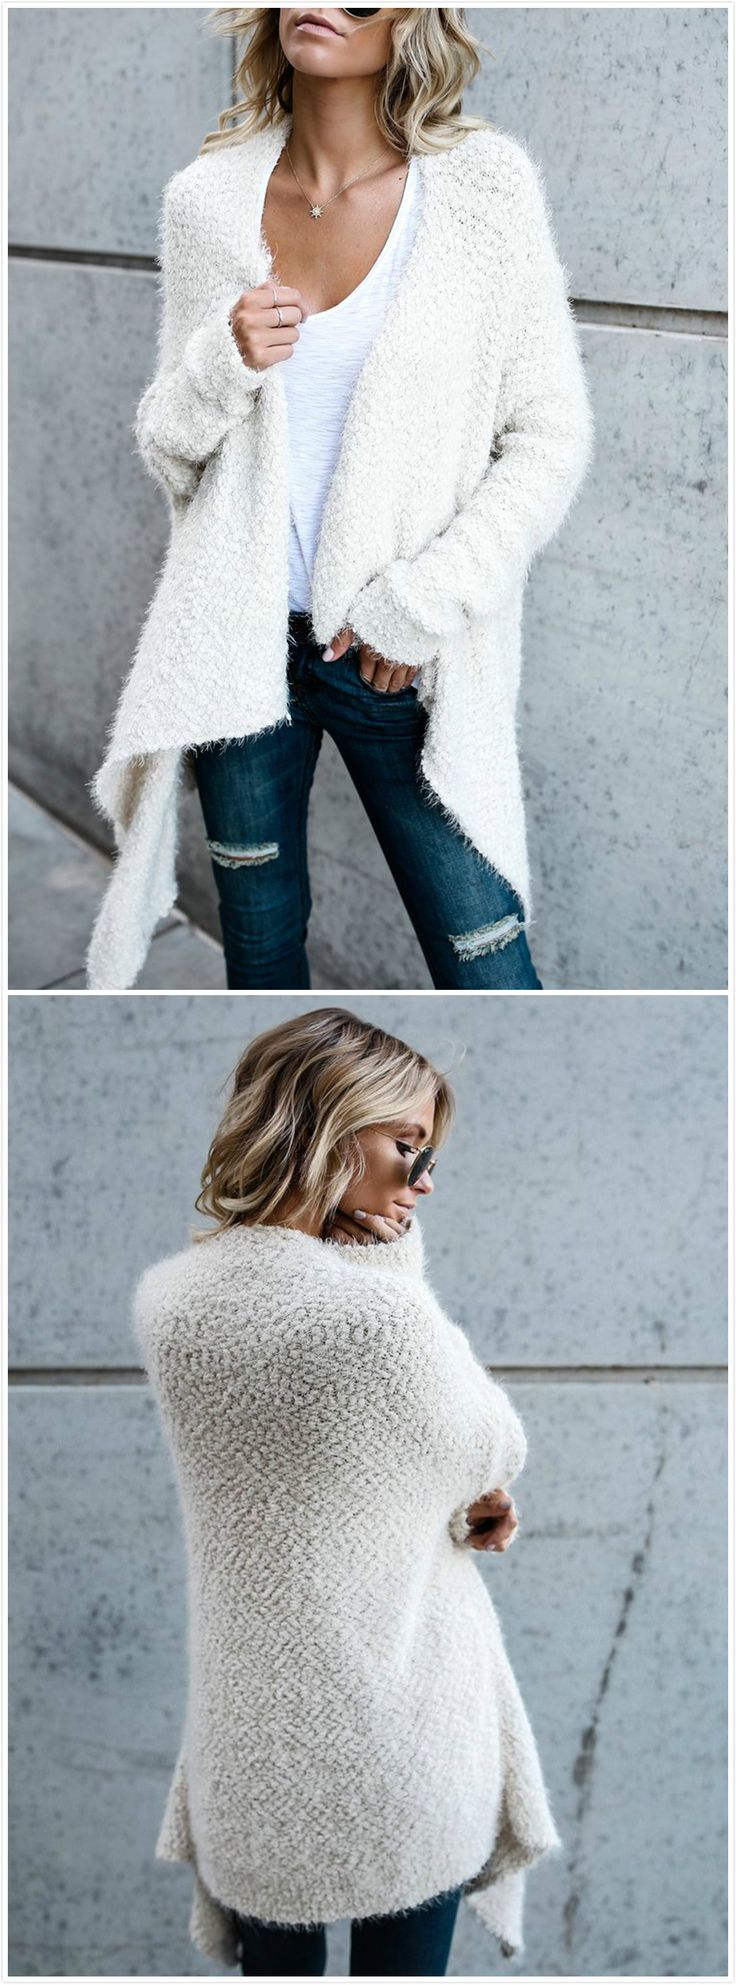 White fuzzy sweater